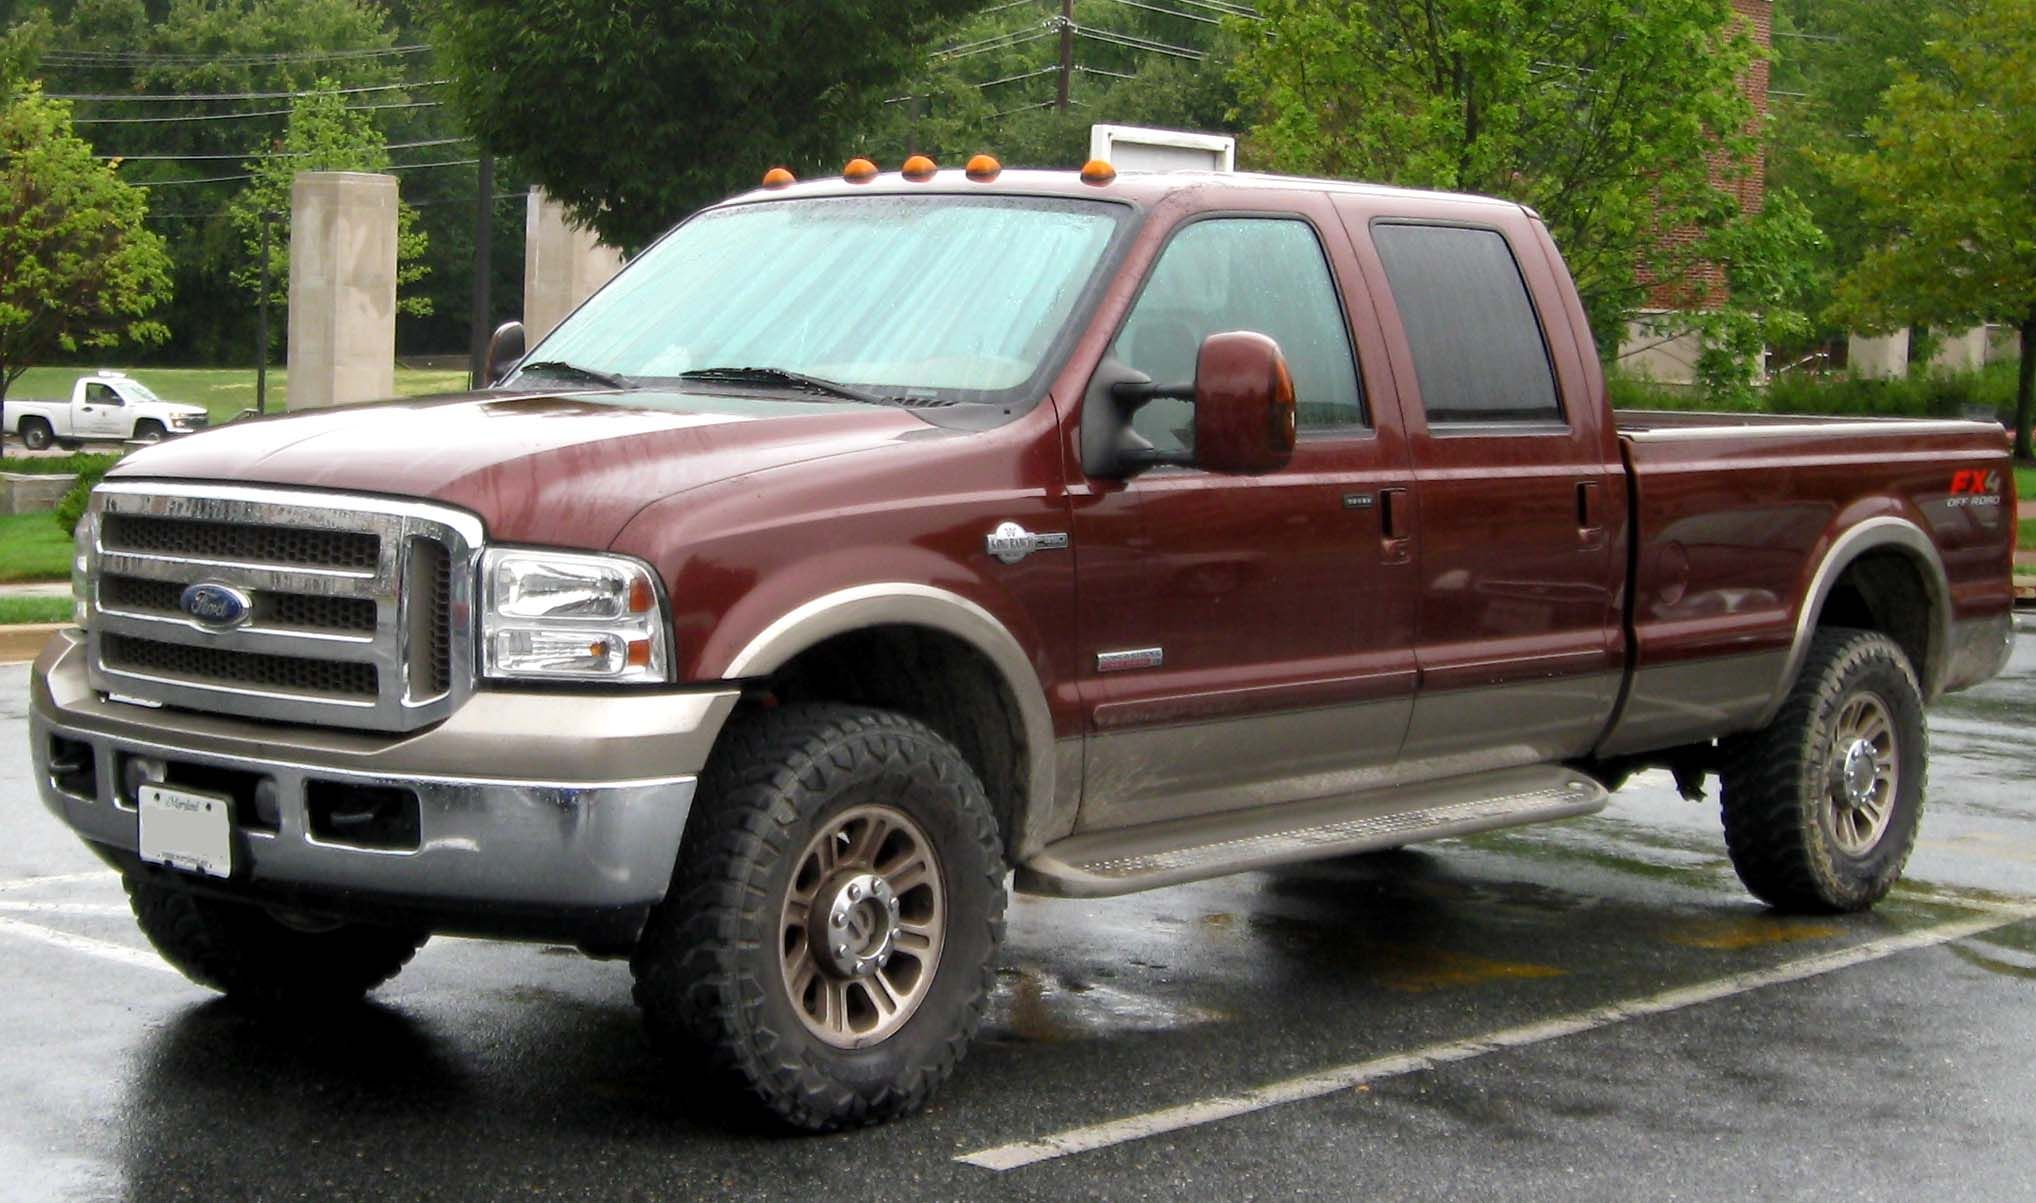 small resolution of 2002 ford f250 v10 super cab mine was a teal blue with tinted windows this thing could pull a small town if you had a good enough chain 9mpg